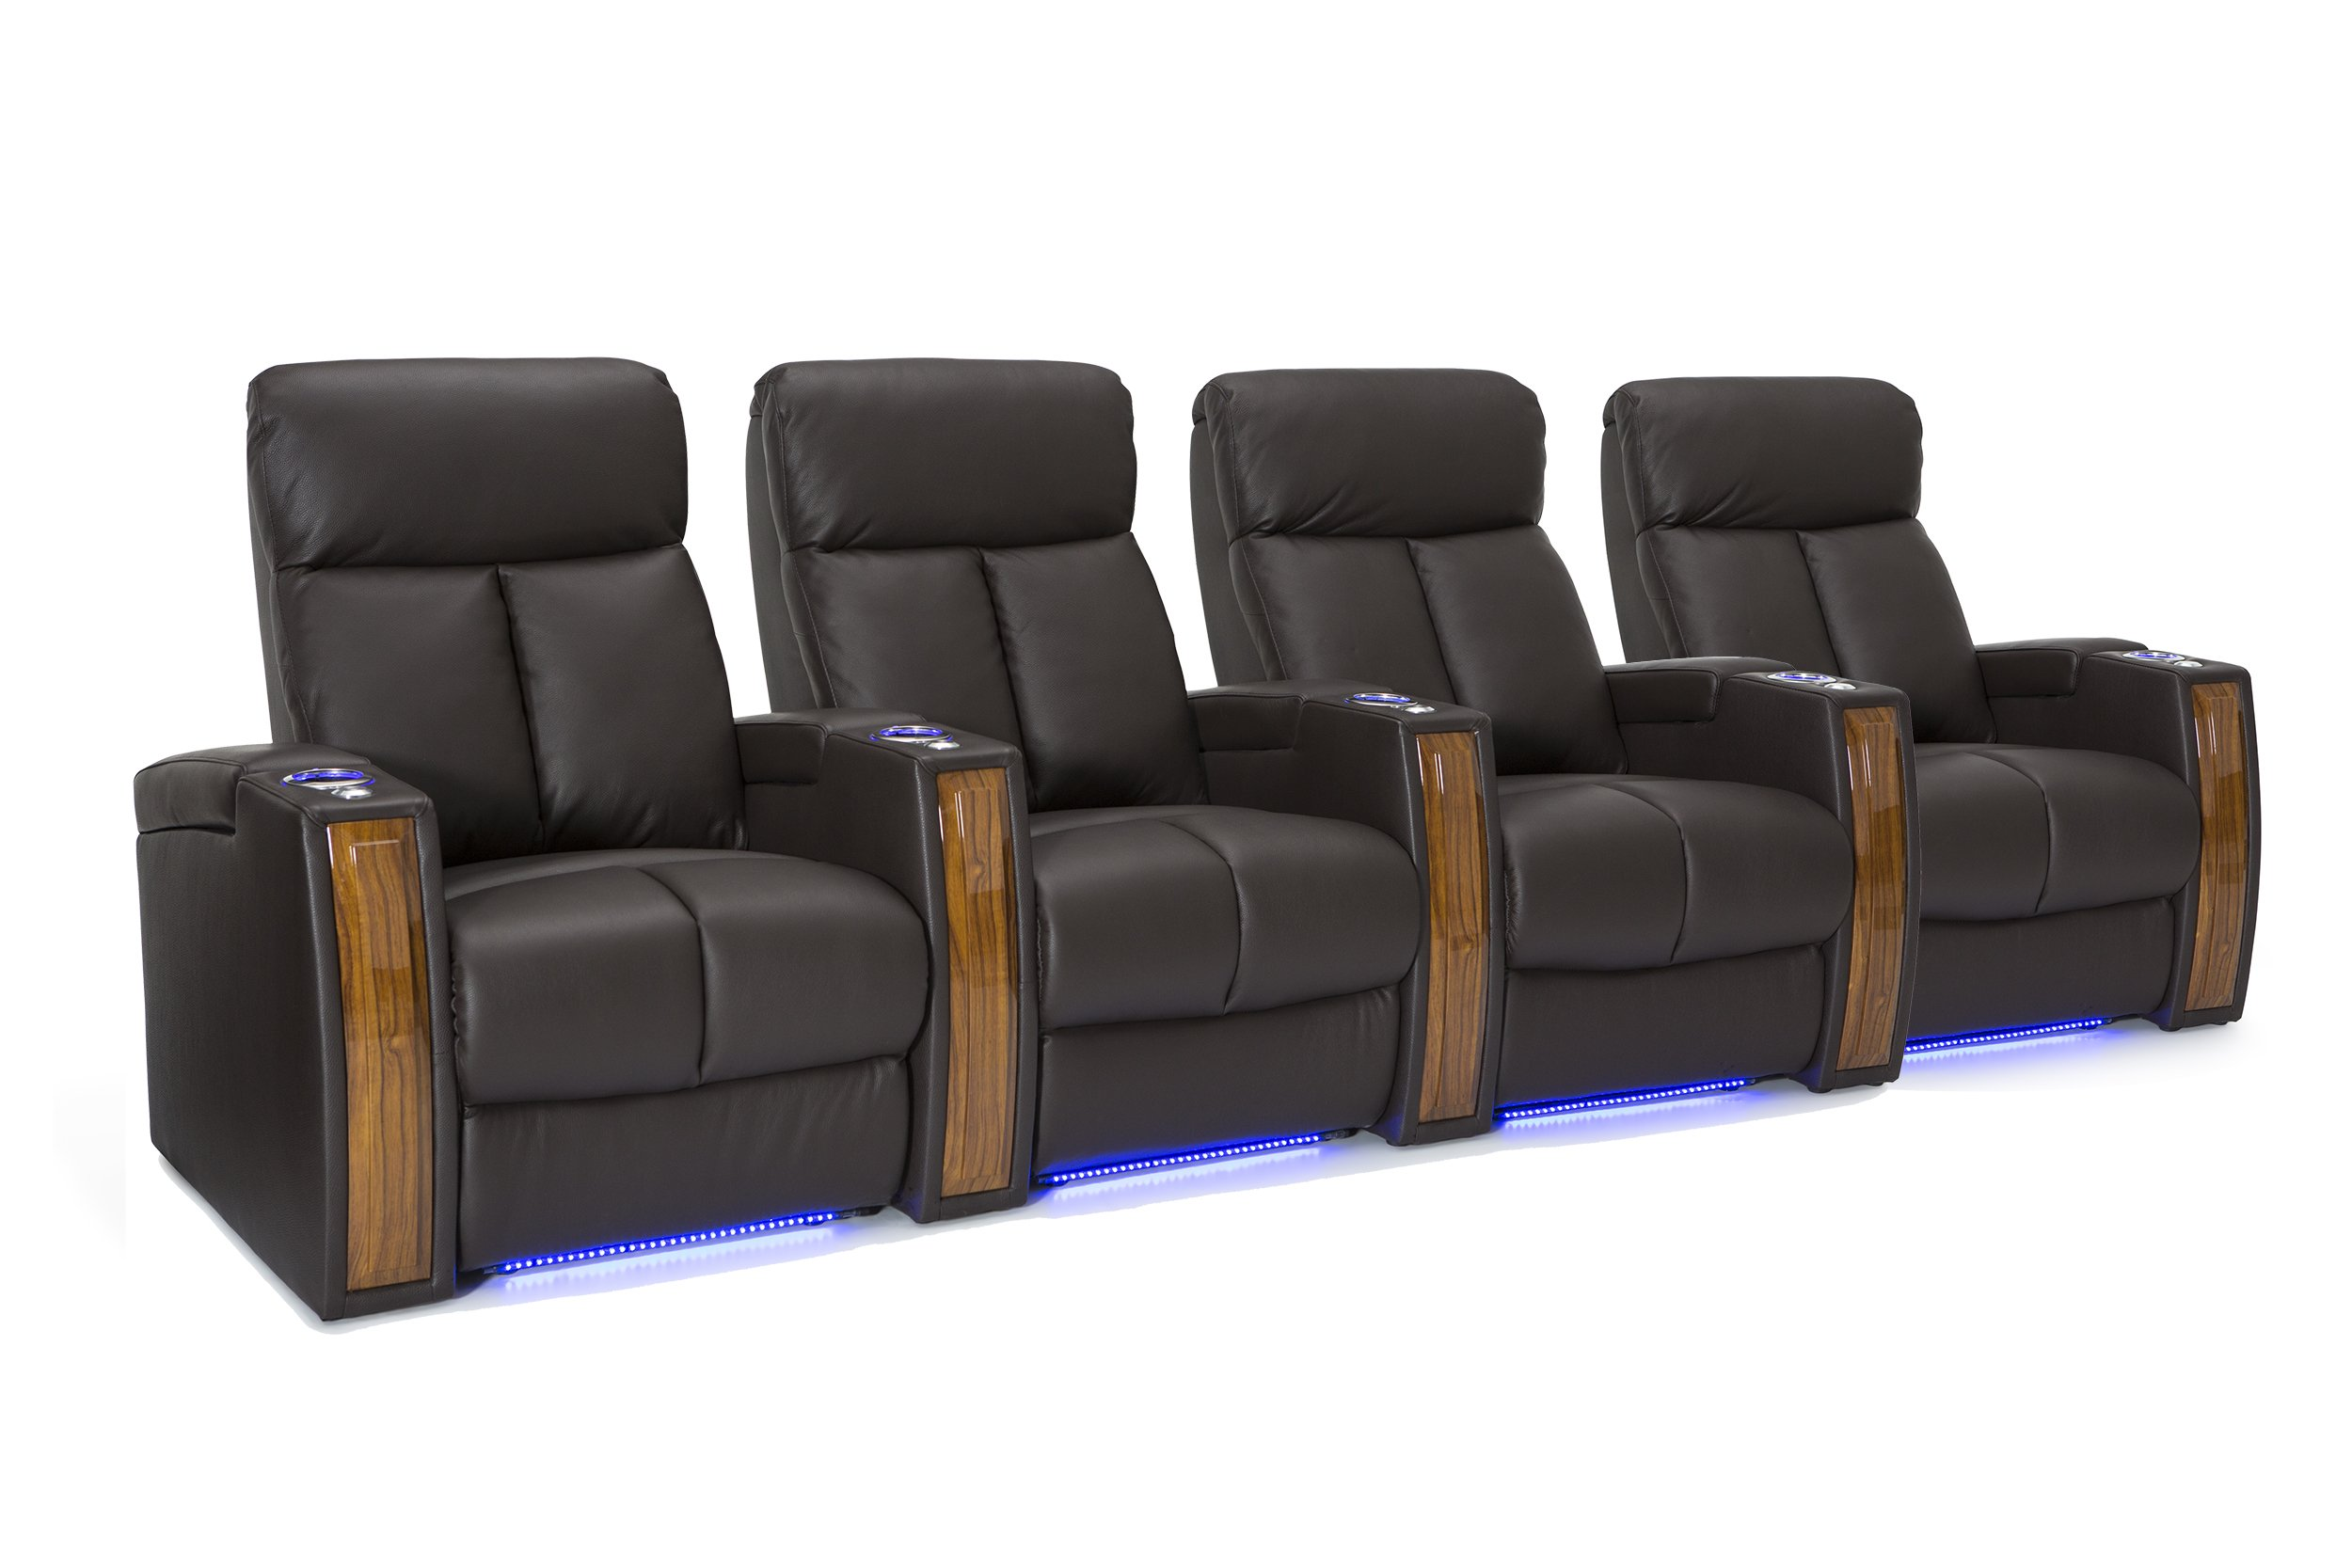 Seatcraft Seville Home Theater Seating Leather Power Recline with SoundShaker, In-arm Storage, Base Lighting, and Lighted Cup Holders (Brown, Row of 4)